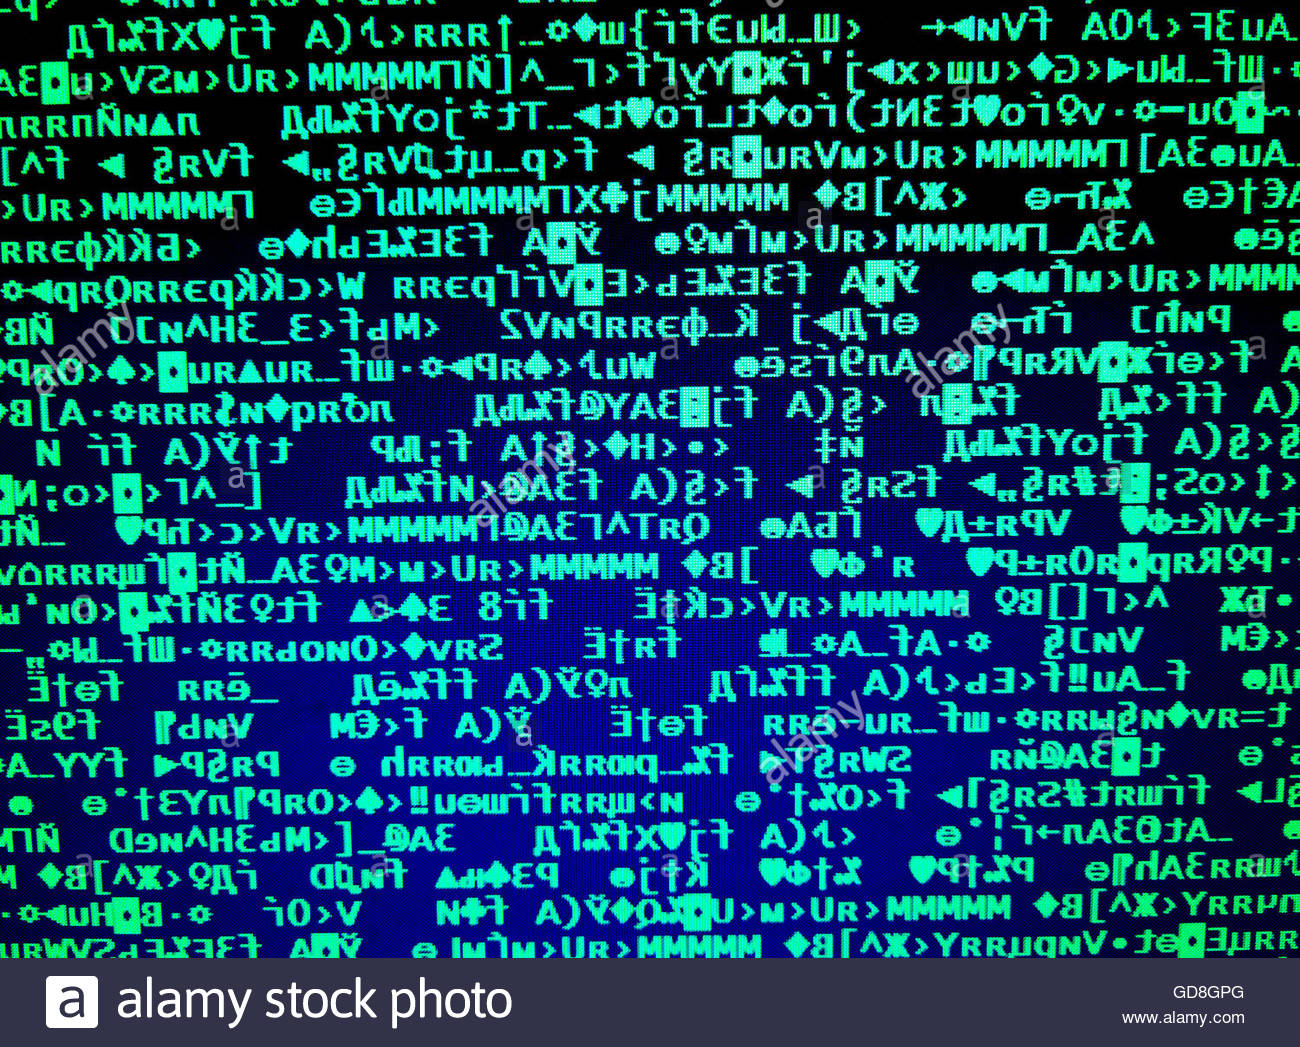 Matrix Falling Code Wallpaper Download Cyberspace Data Matrix Background Stock Photo Royalty